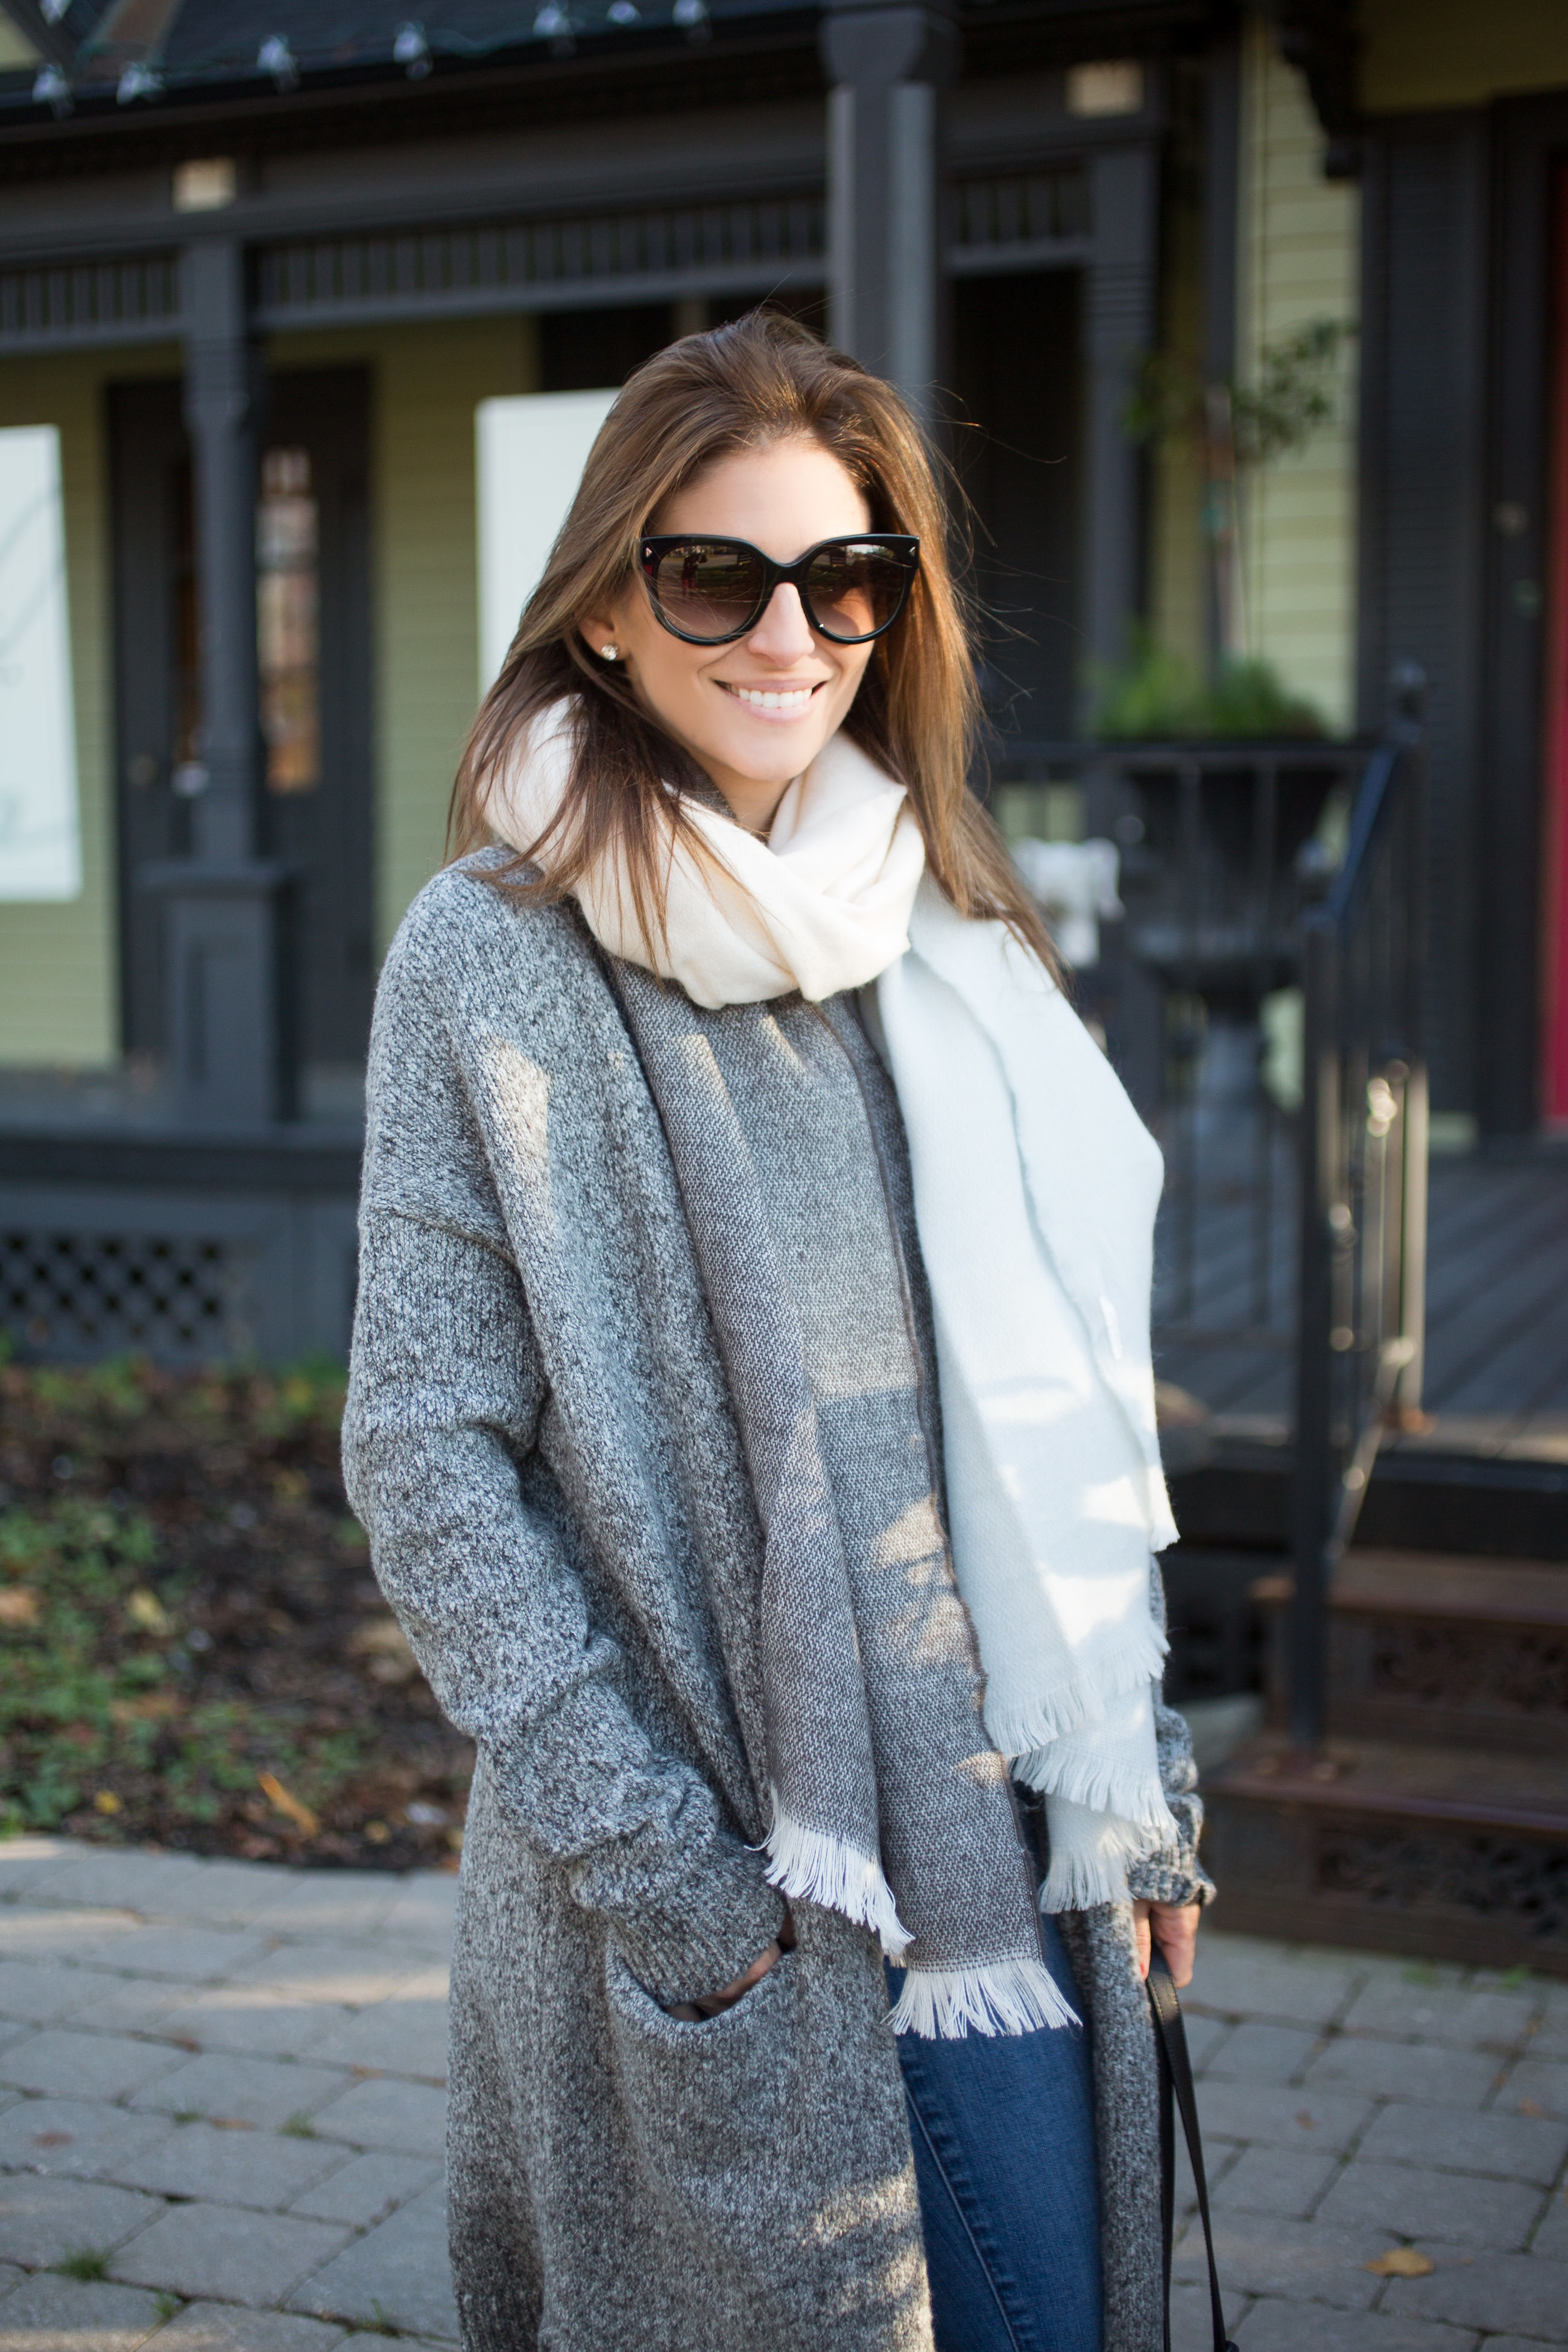 winter-look-with-cardigan-and-warm-scarf